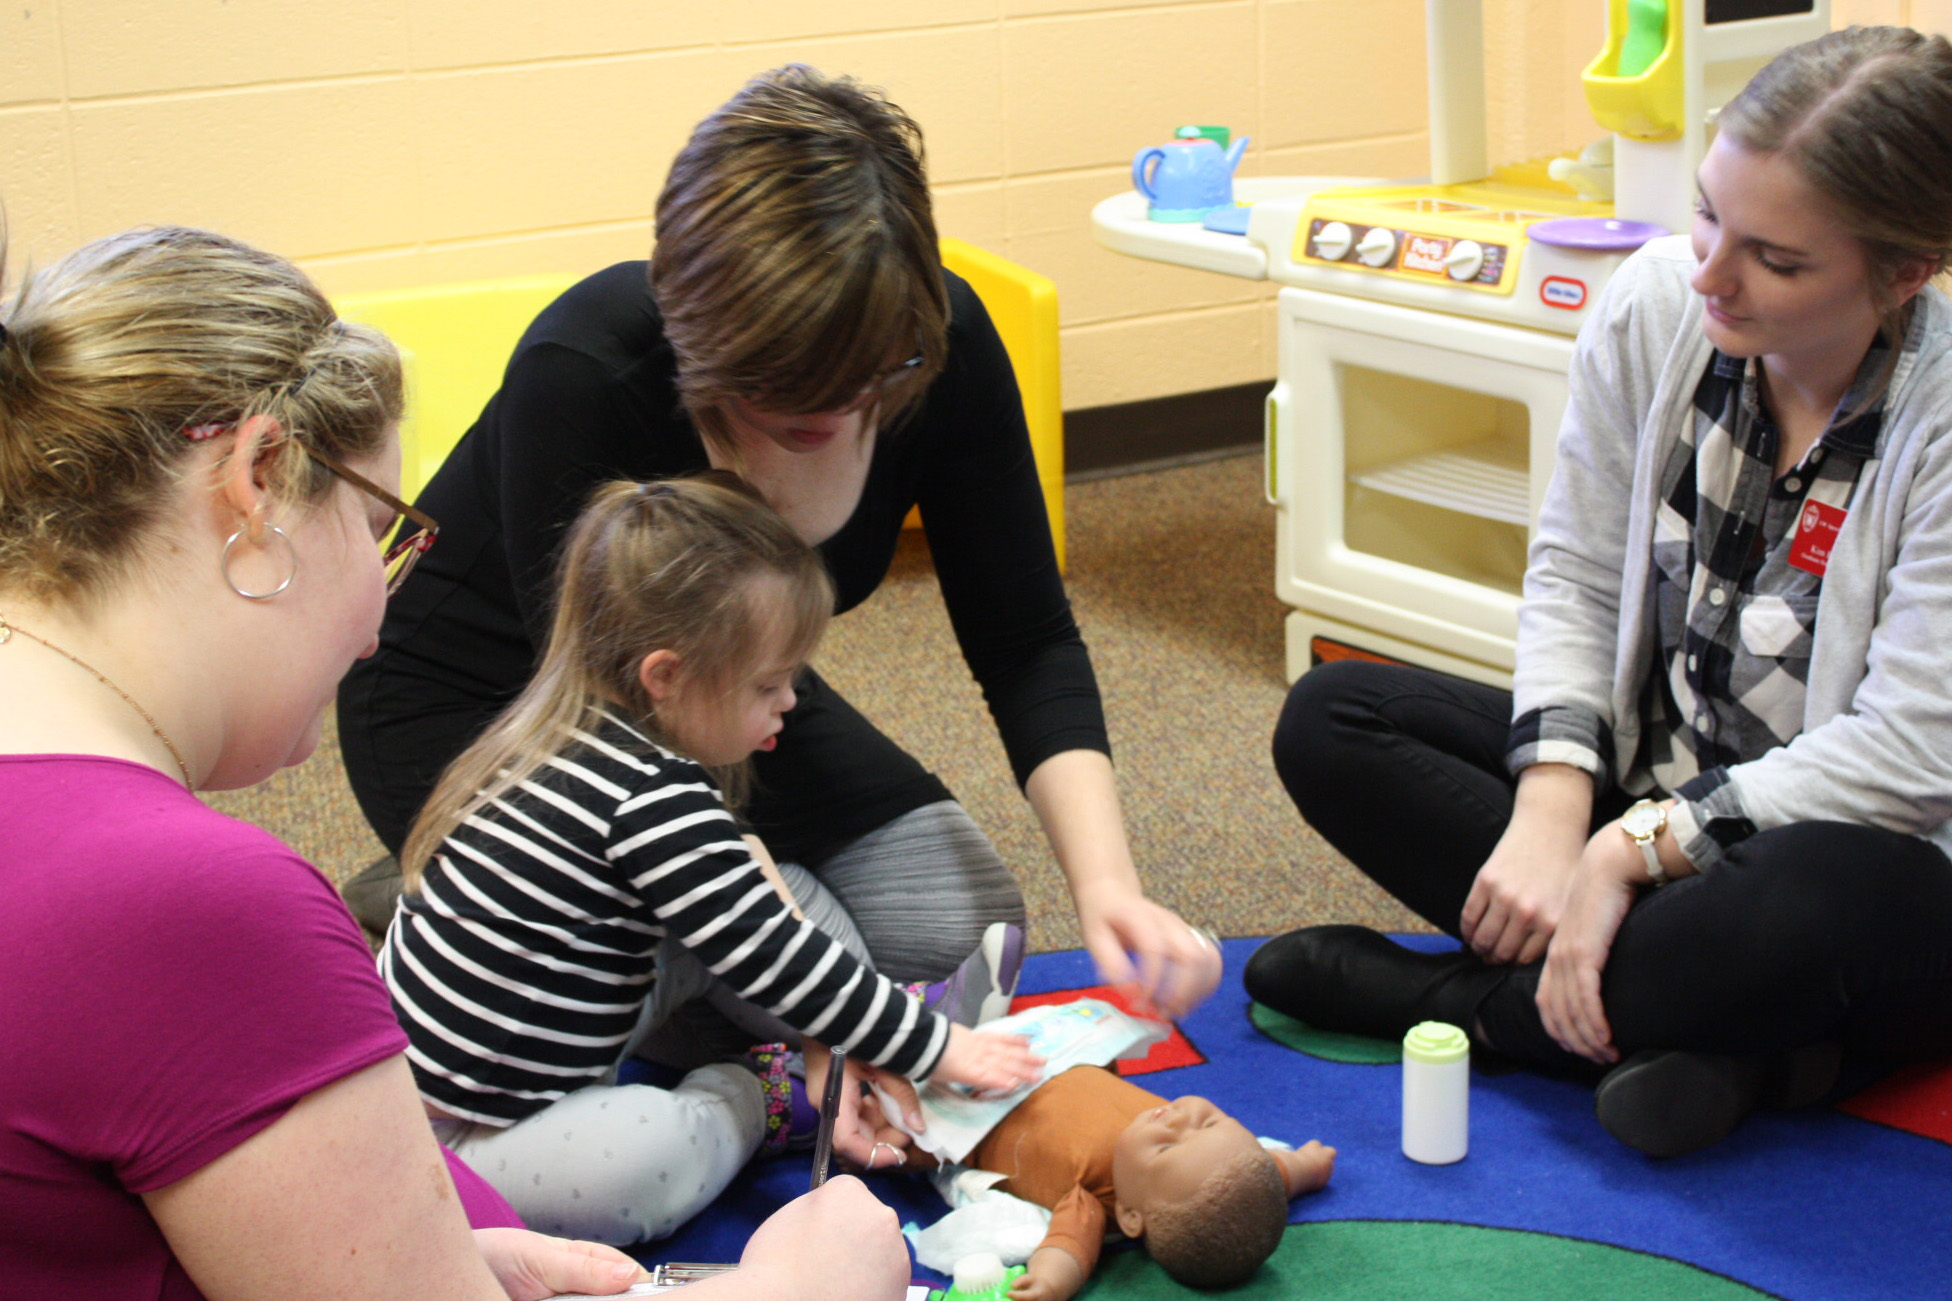 Student clinicians work with a family in a group session.